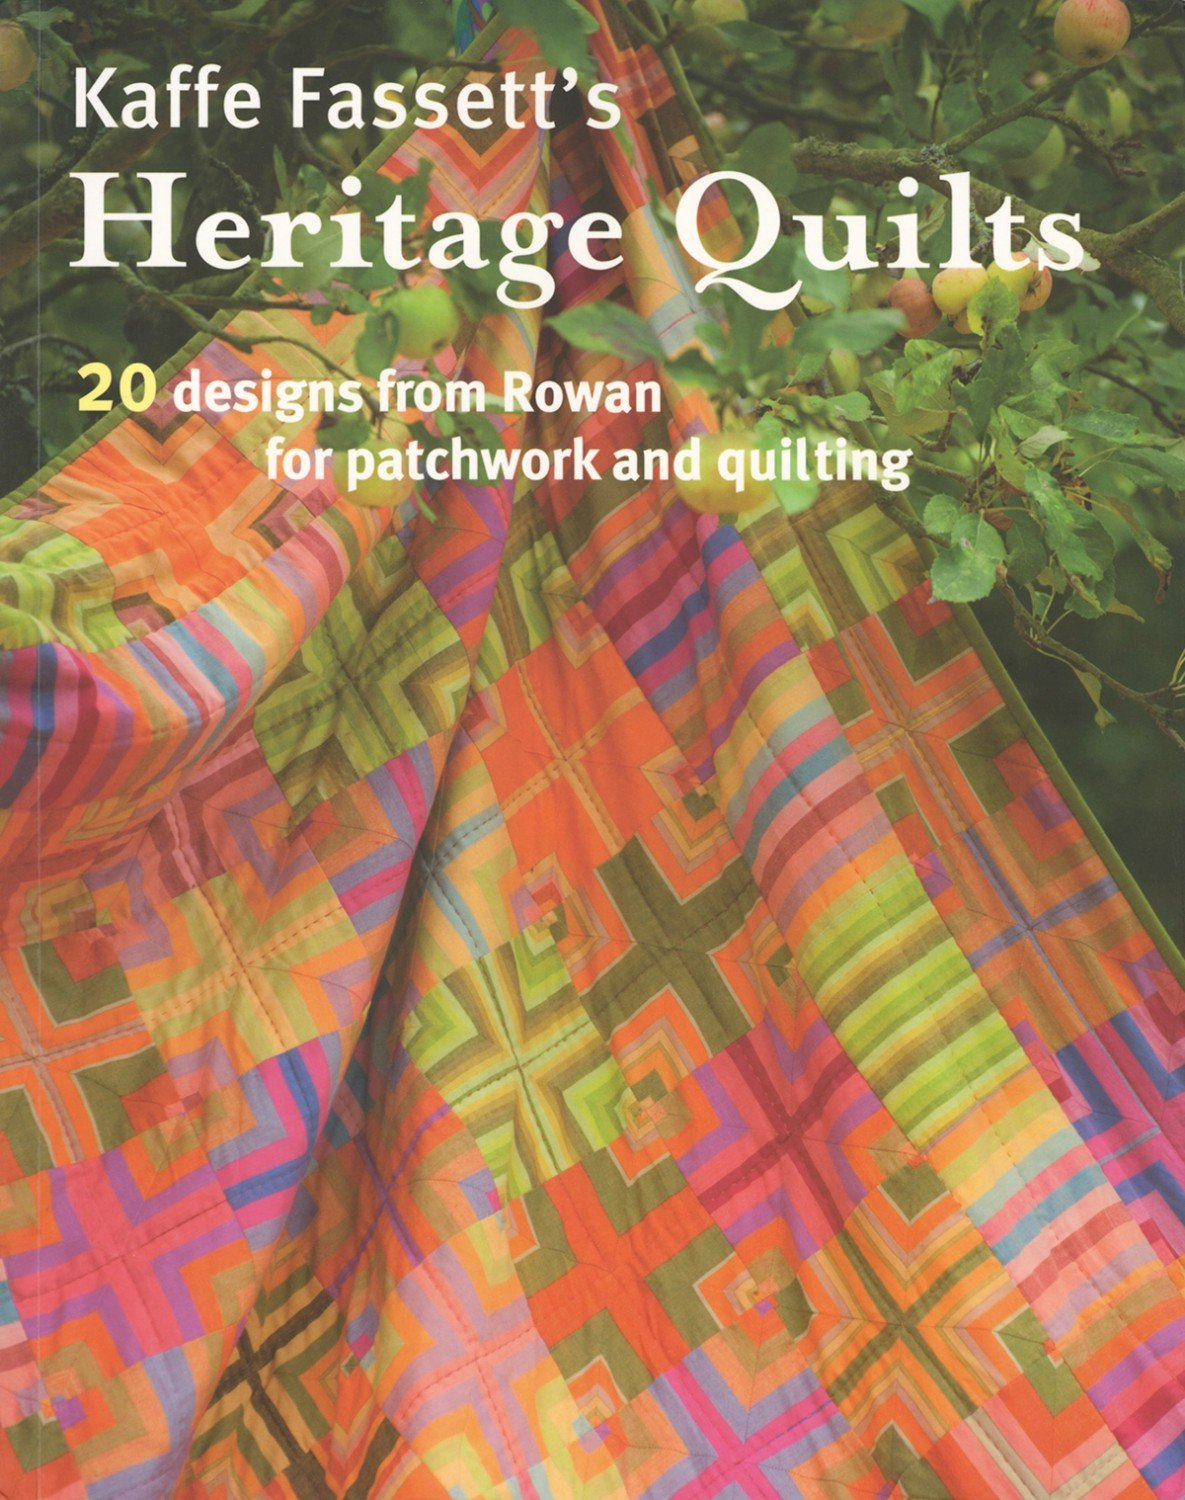 Kaffe Fassett's Heritage Quilts - Softcover